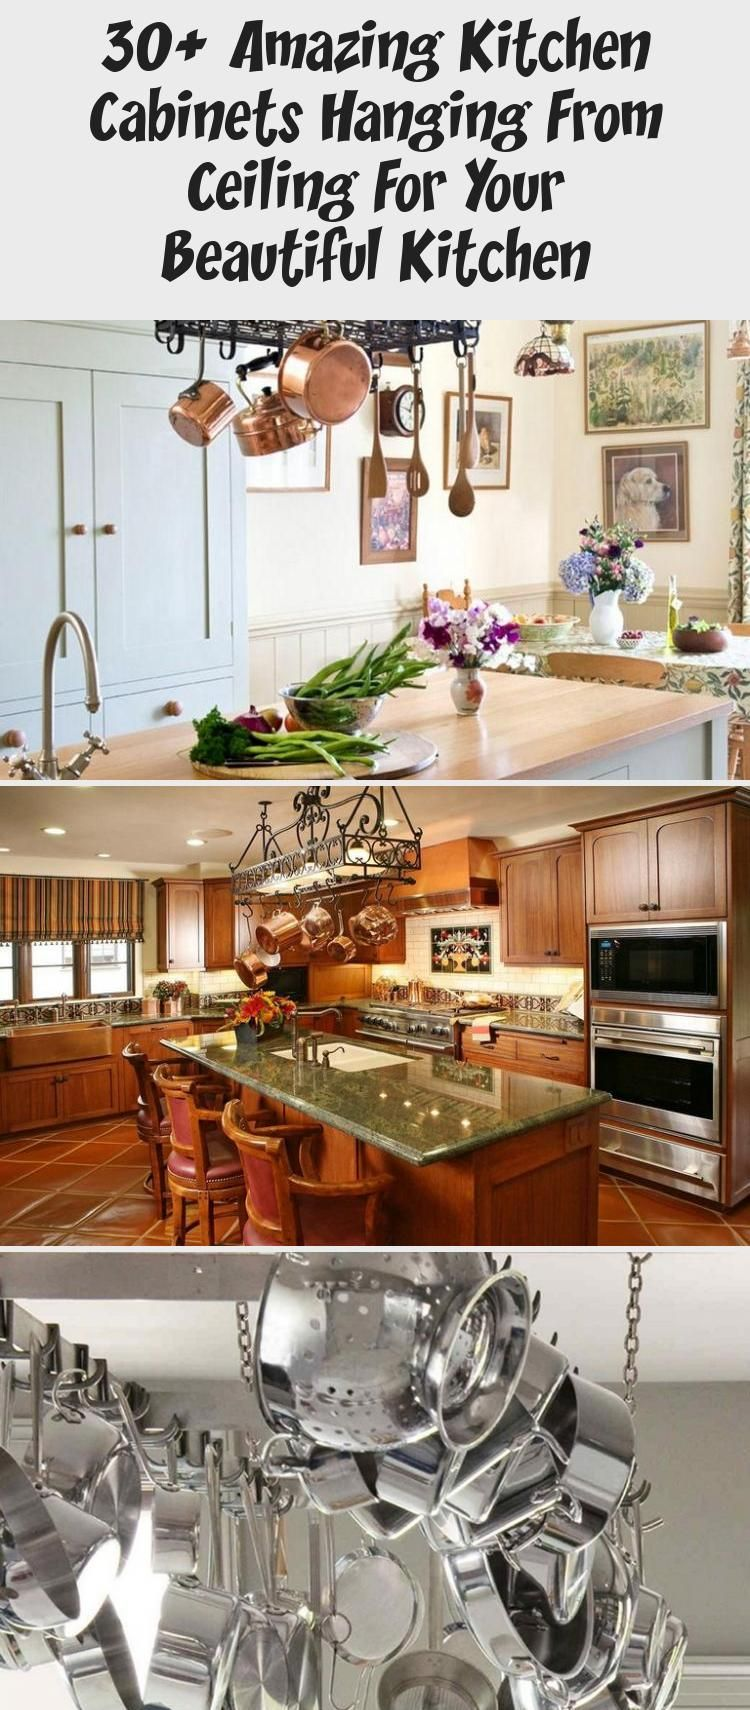 30+ Amazing Kitchen Cabinets Hanging From Ceiling For Your ...